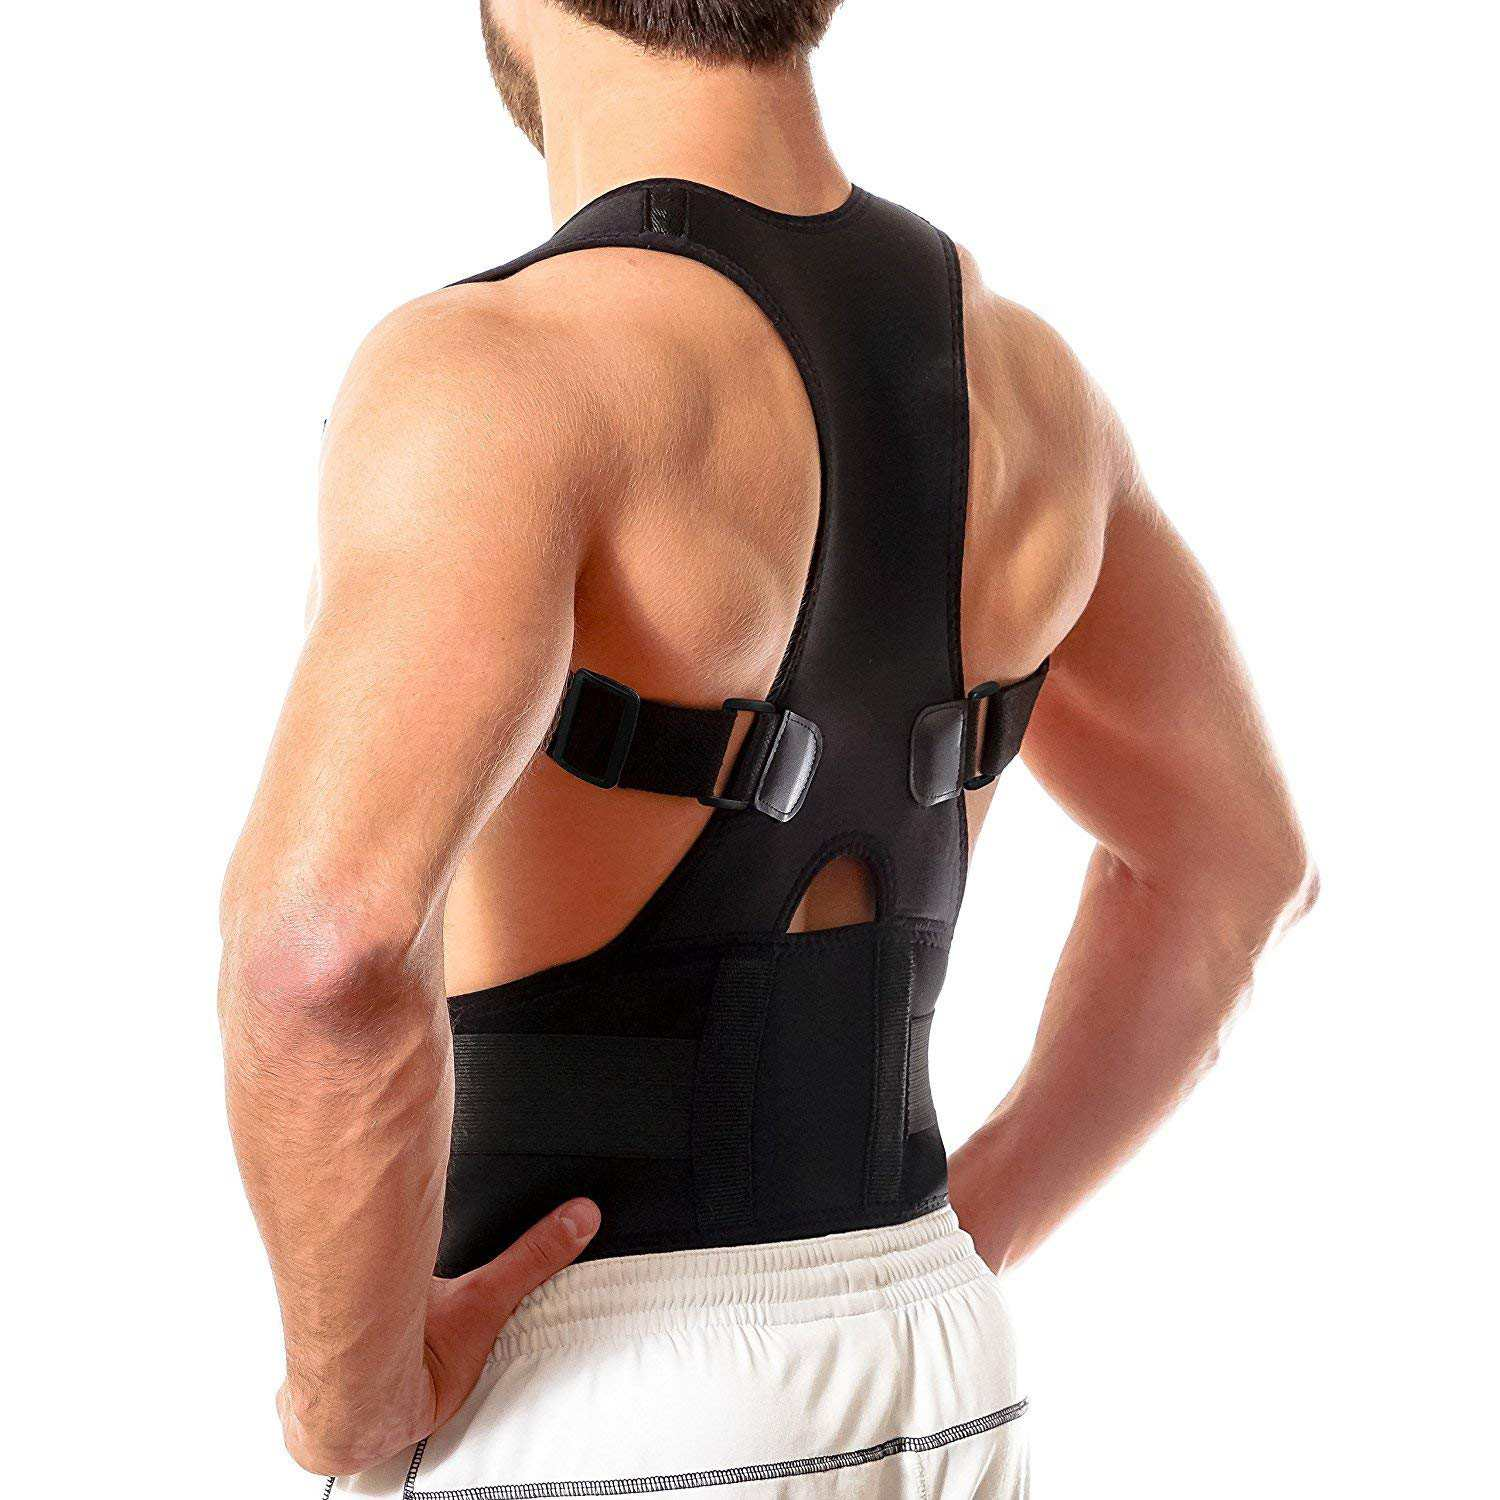 b30787ef7a Best Overall: Flexguard Support Back Brace